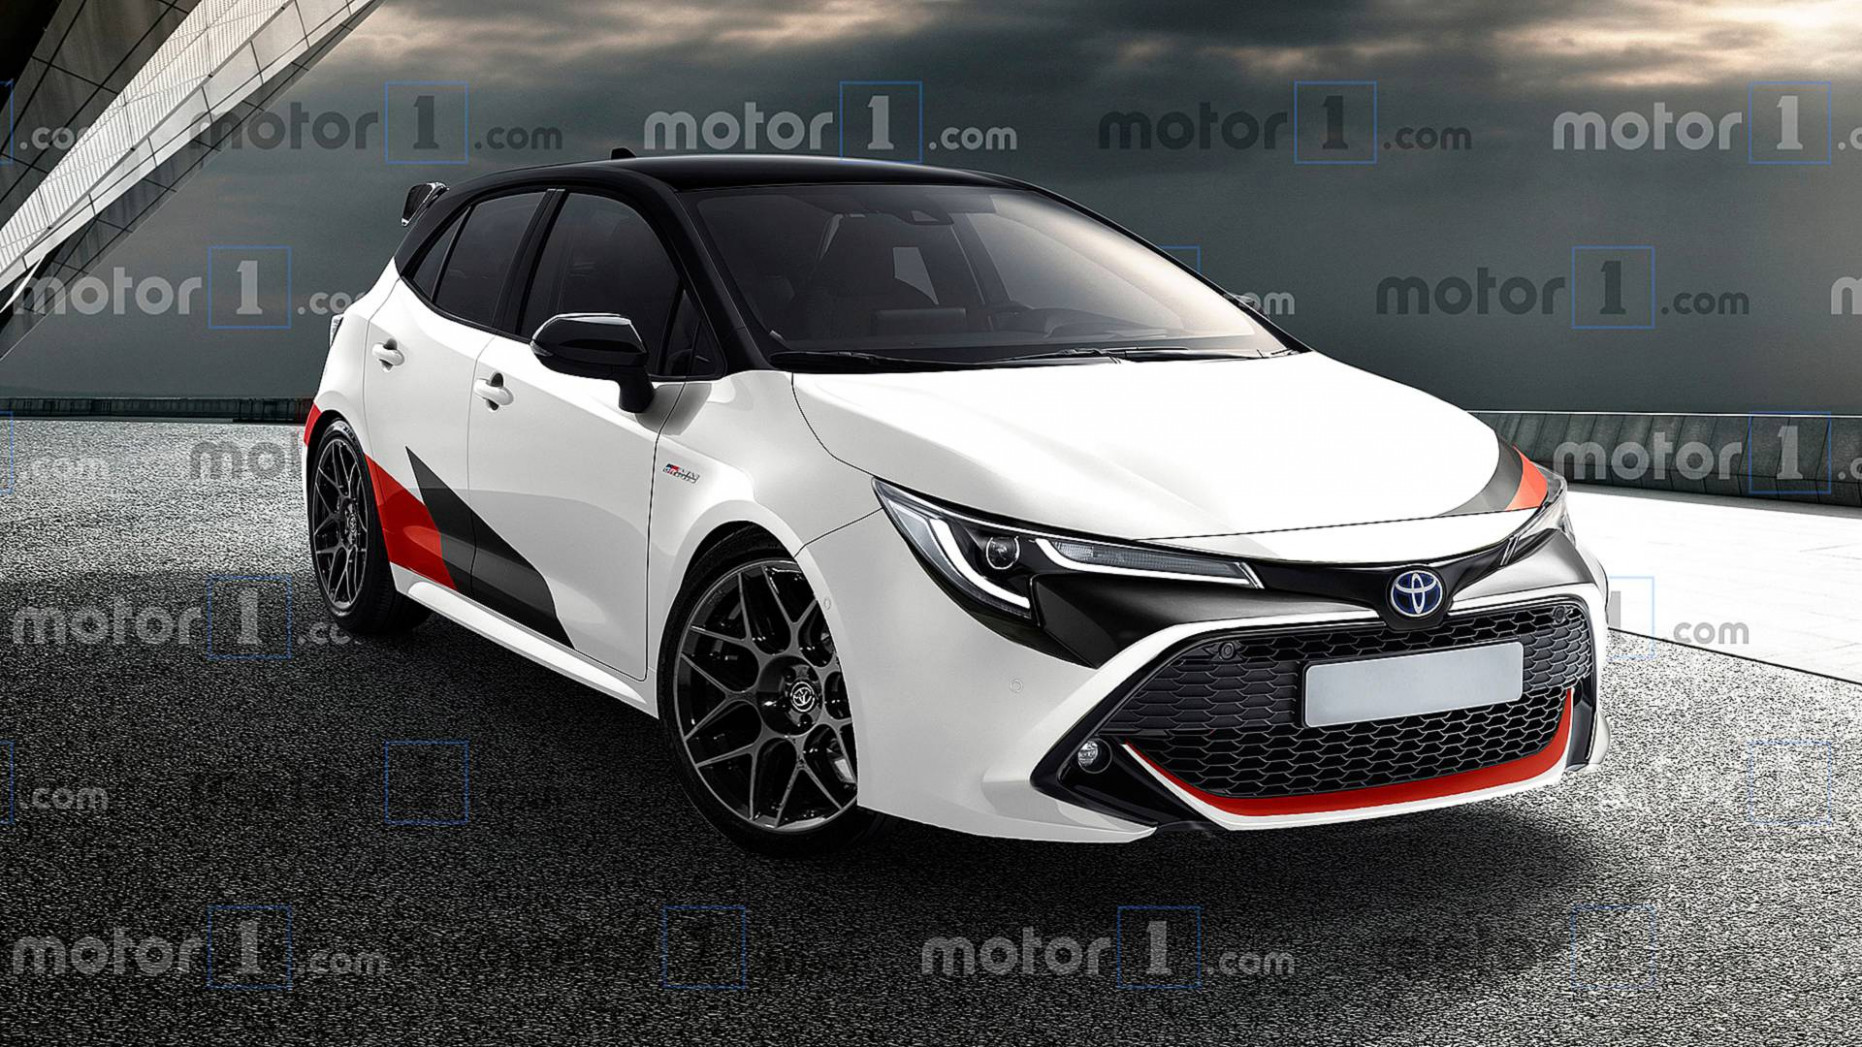 New Model and Performance 2022 Toyota Auris